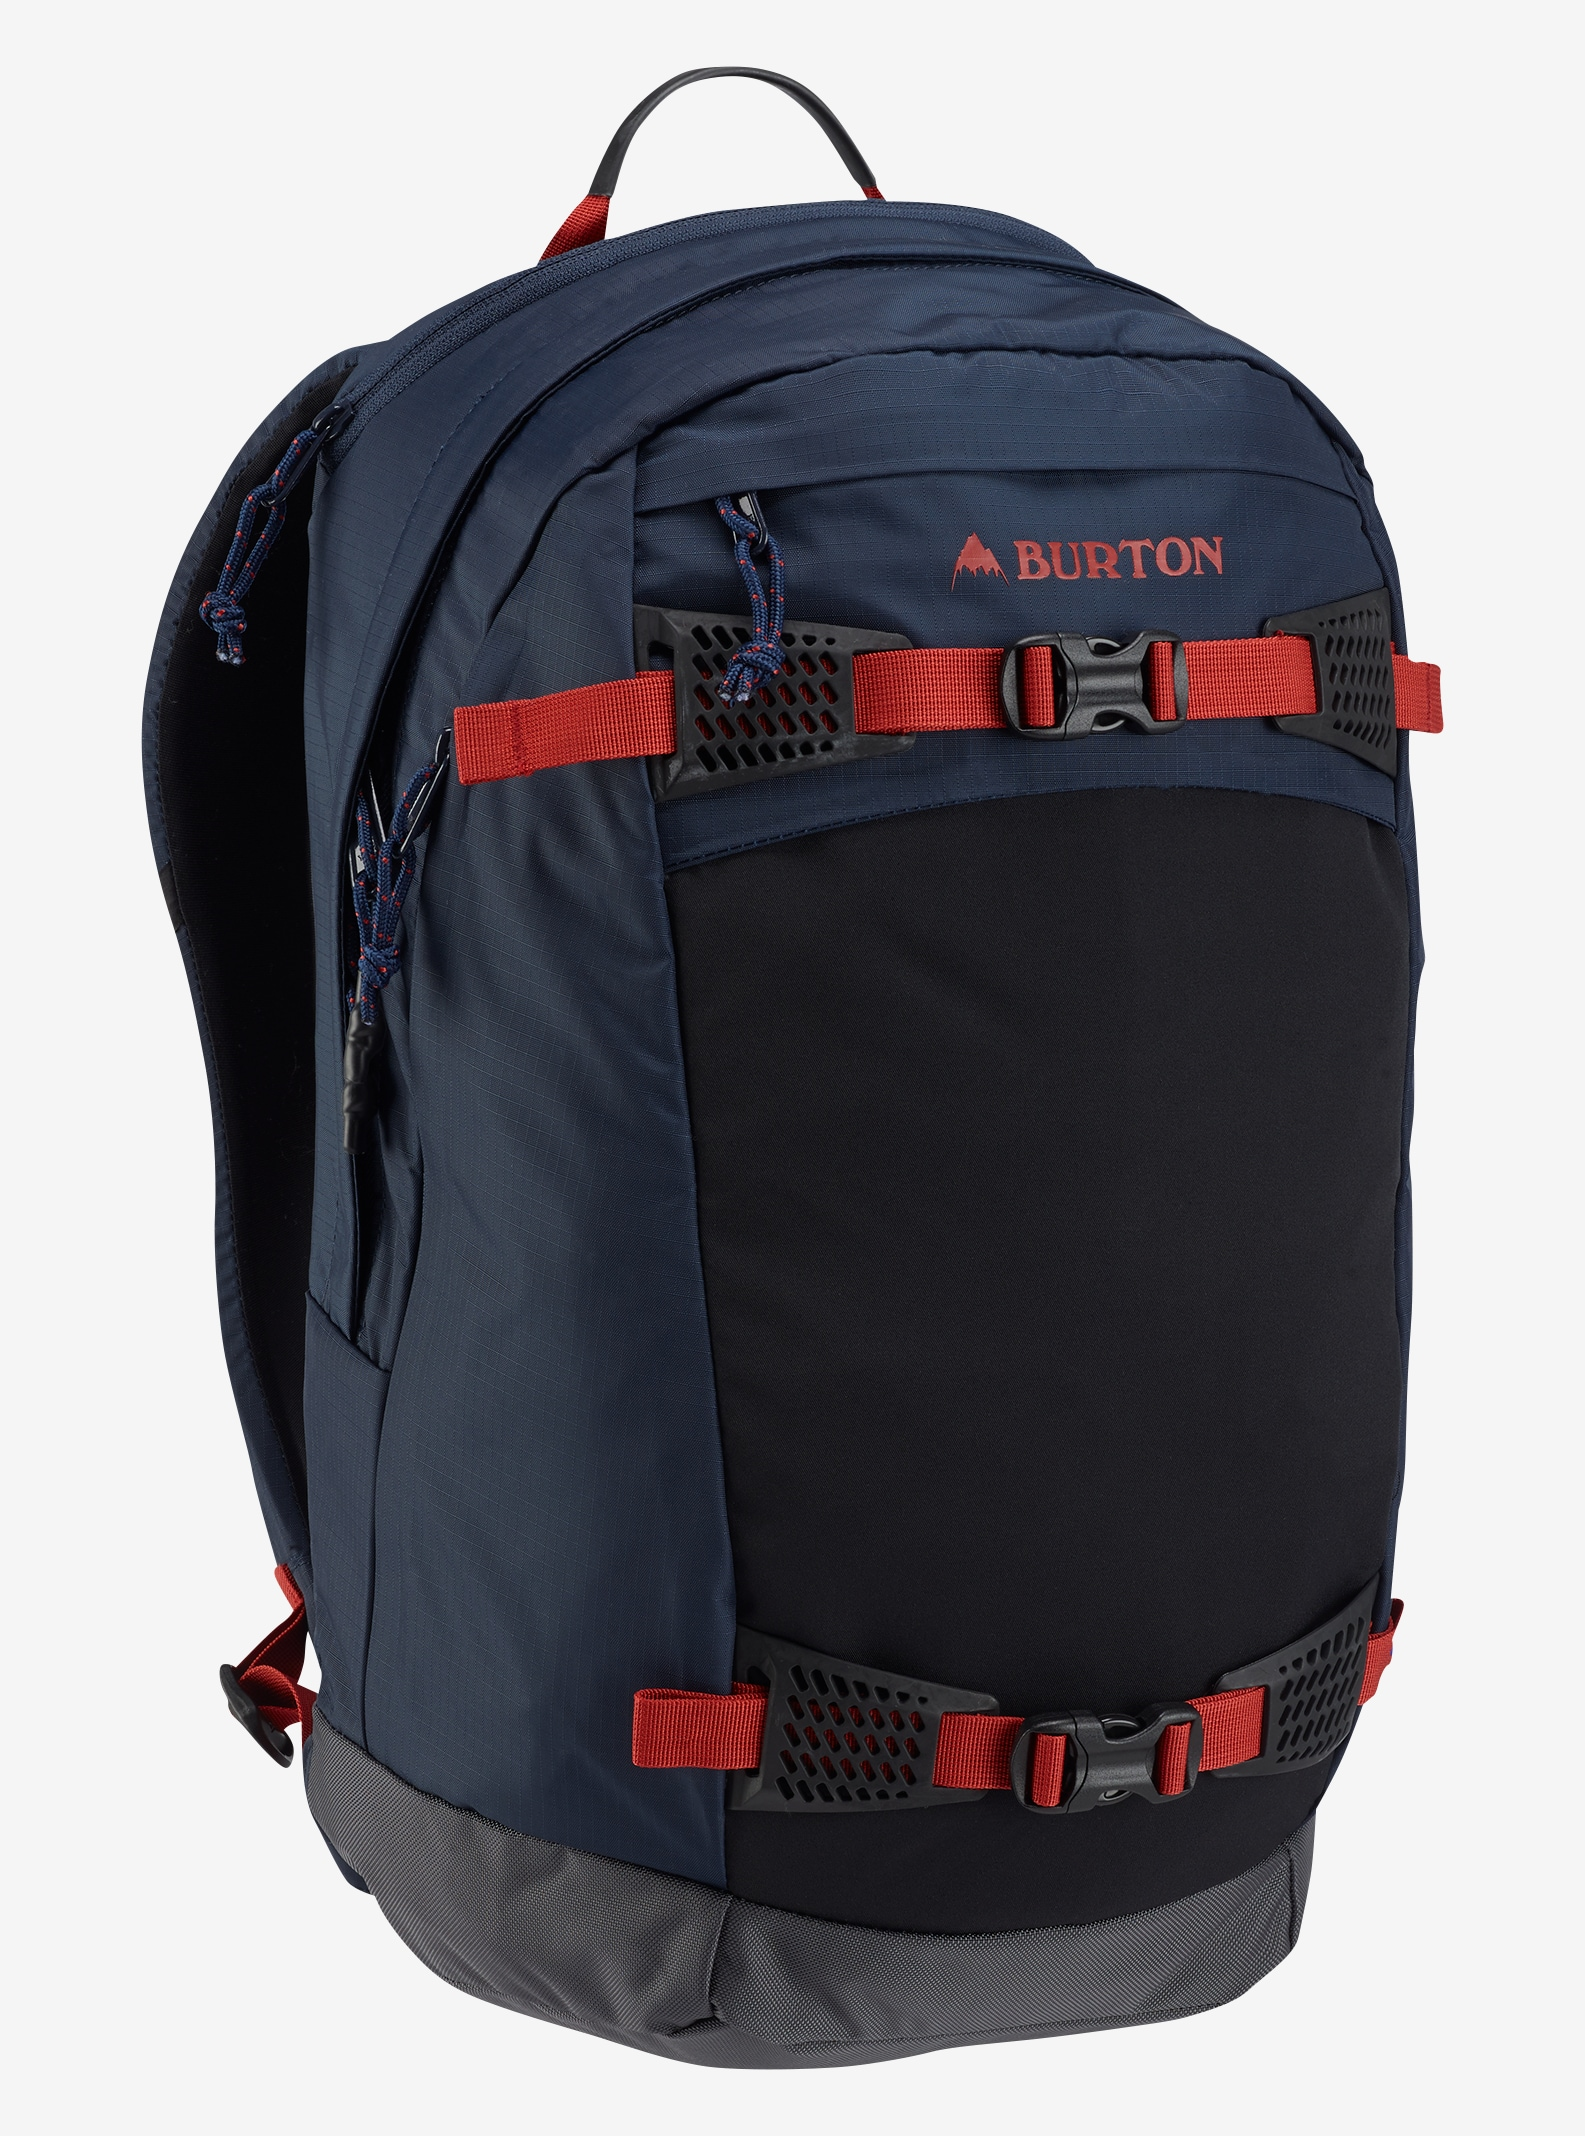 Burton Day Hiker Pro 28L Backpack shown in Eclipse Coated Ripstop